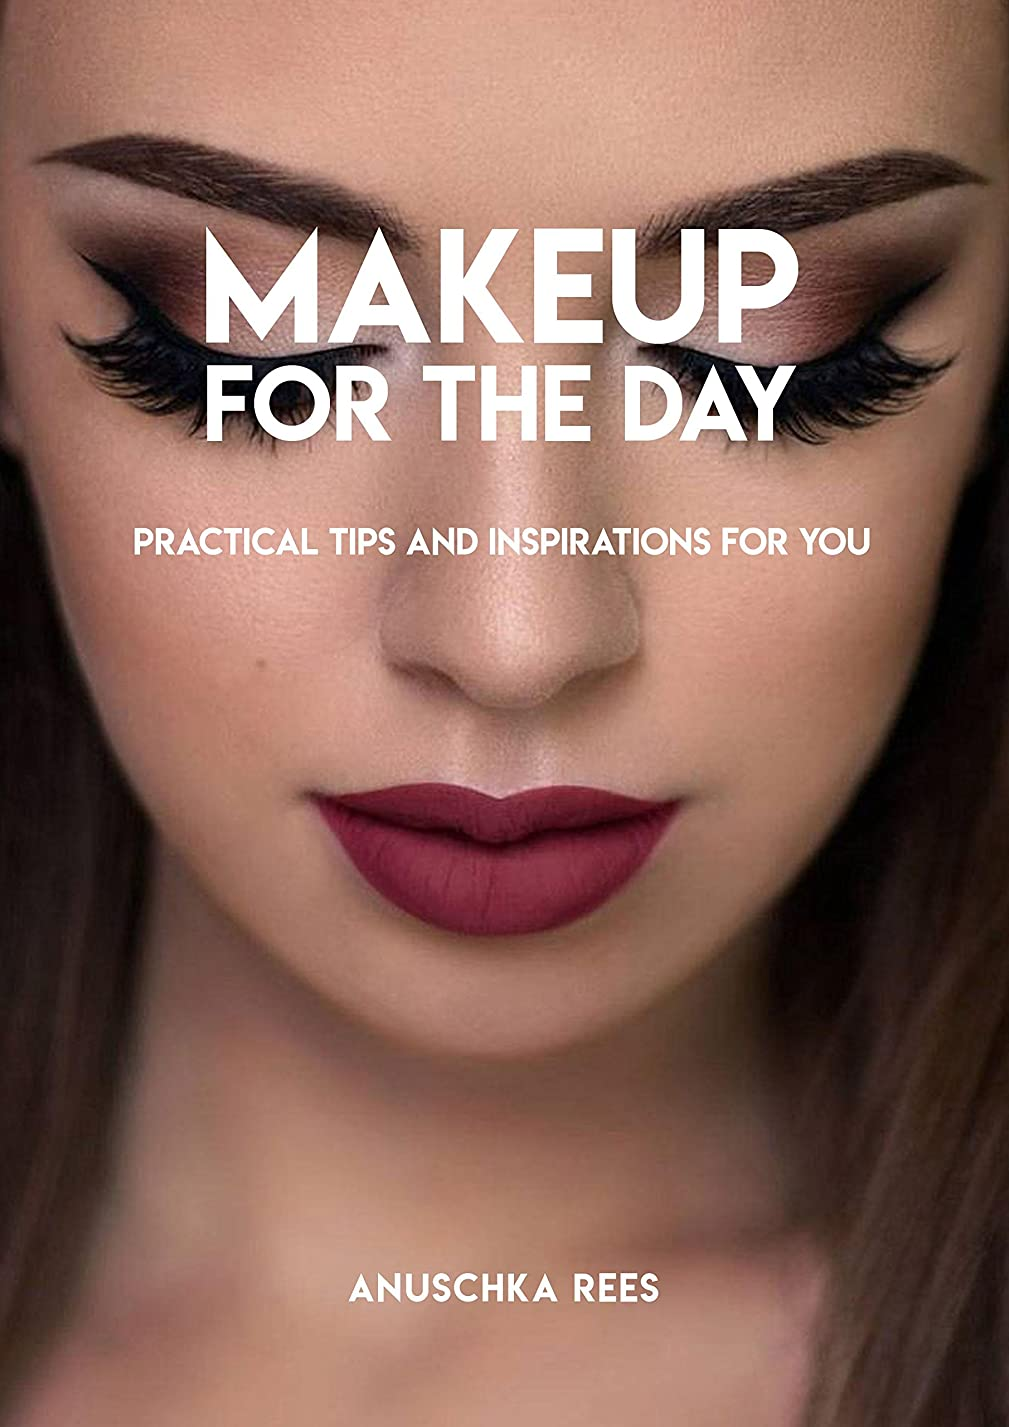 忌避剤サルベージ利用可能Makeup For The Day, Practical Tips And Inspirations For You (English Edition)